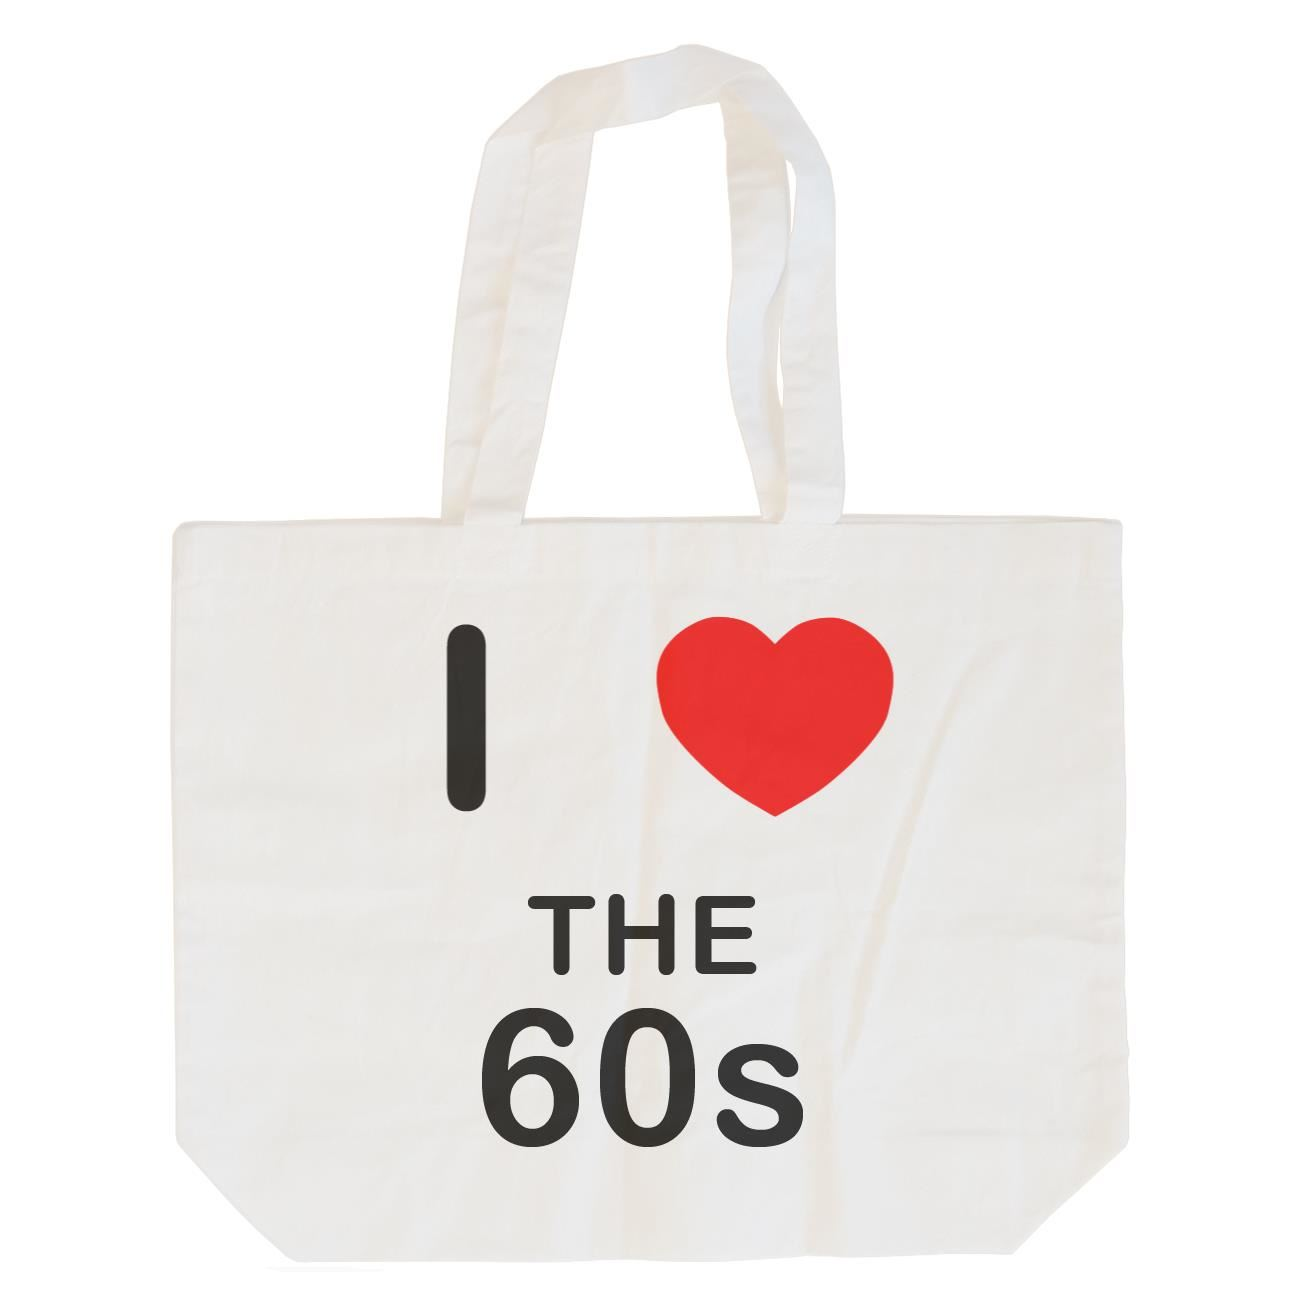 I Love The 60's - Cotton Bag | Size choice Tote, Shopper or Sling